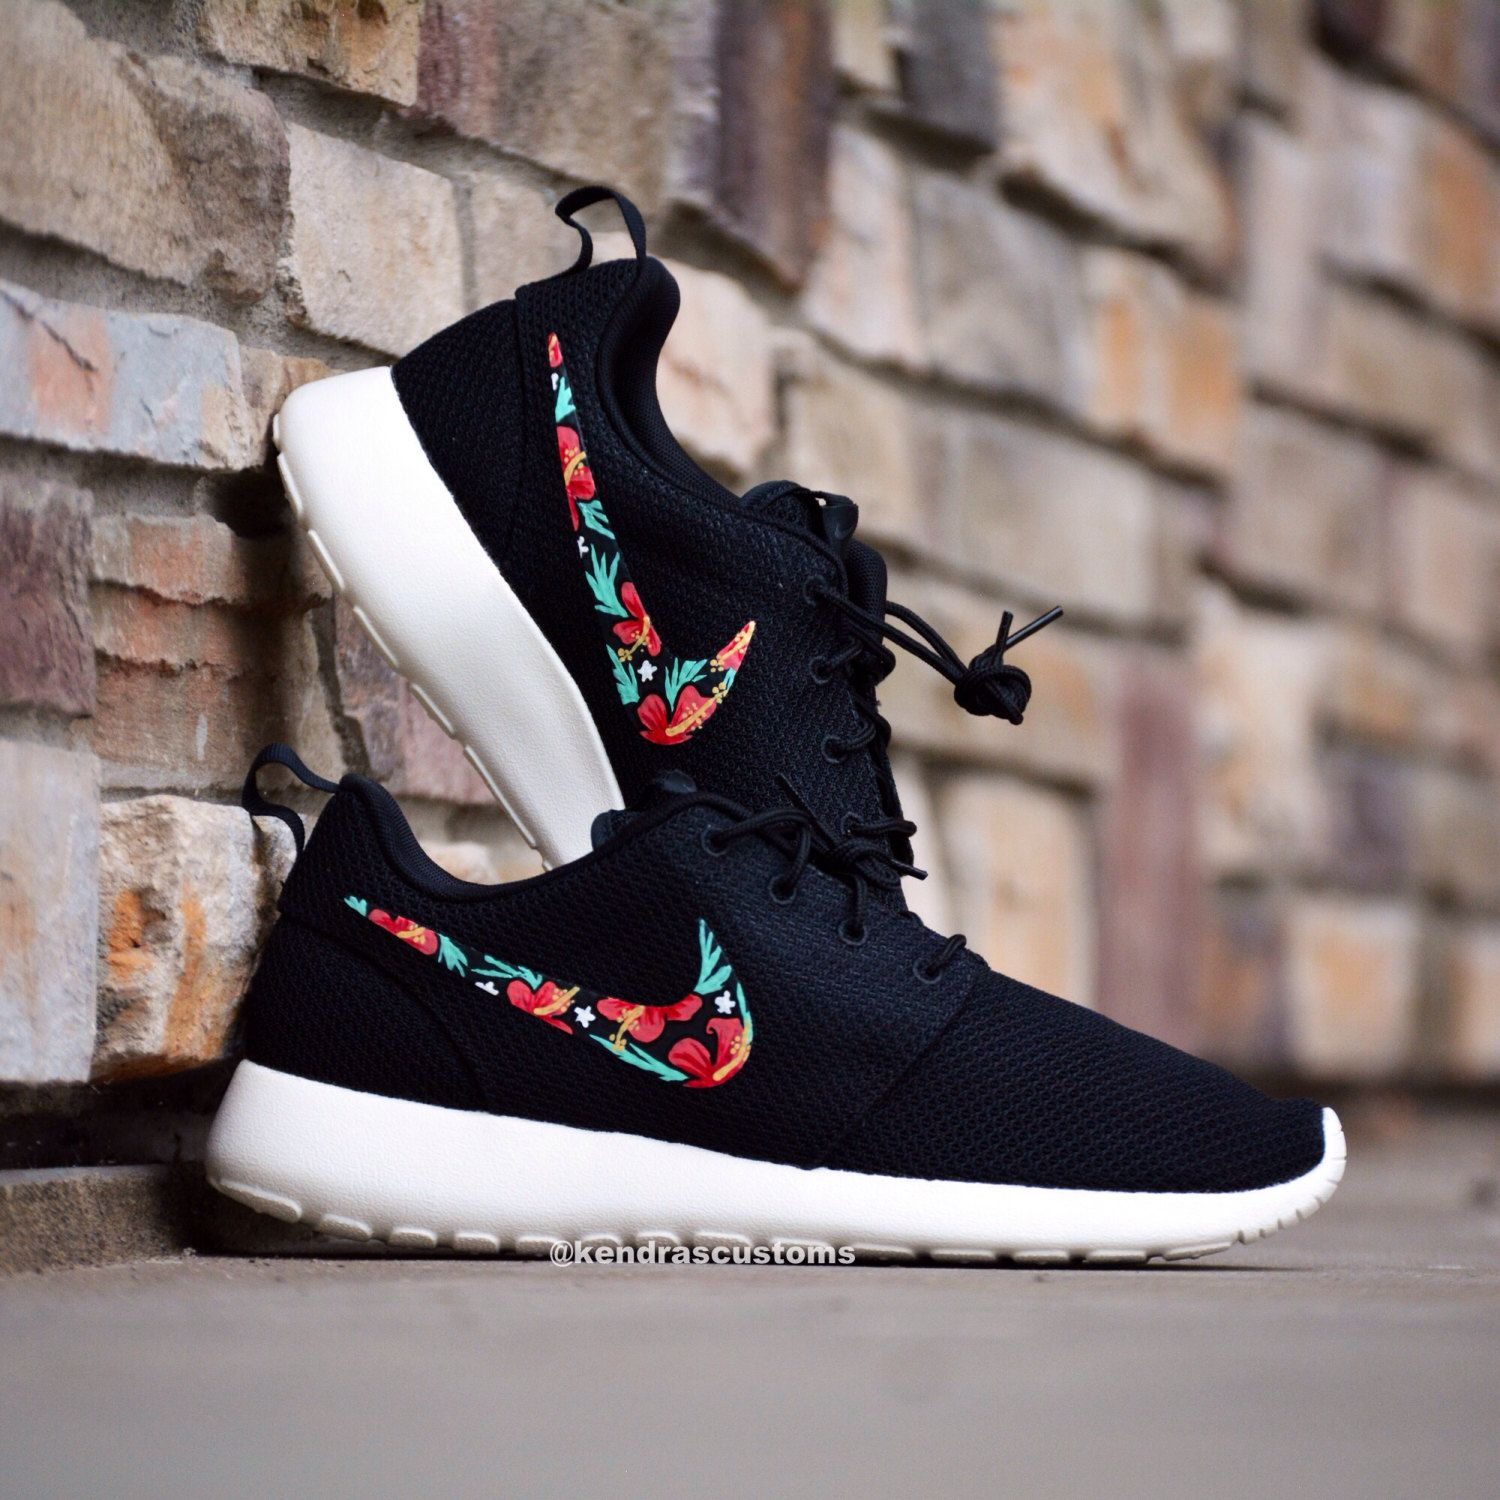 prisa camioneta mentiroso  BLACK ROSHE RUN'S WITH A FLORAL NIKE TICK | Cool nike shoes, Nike shoes  roshe, Nike shoes cheap